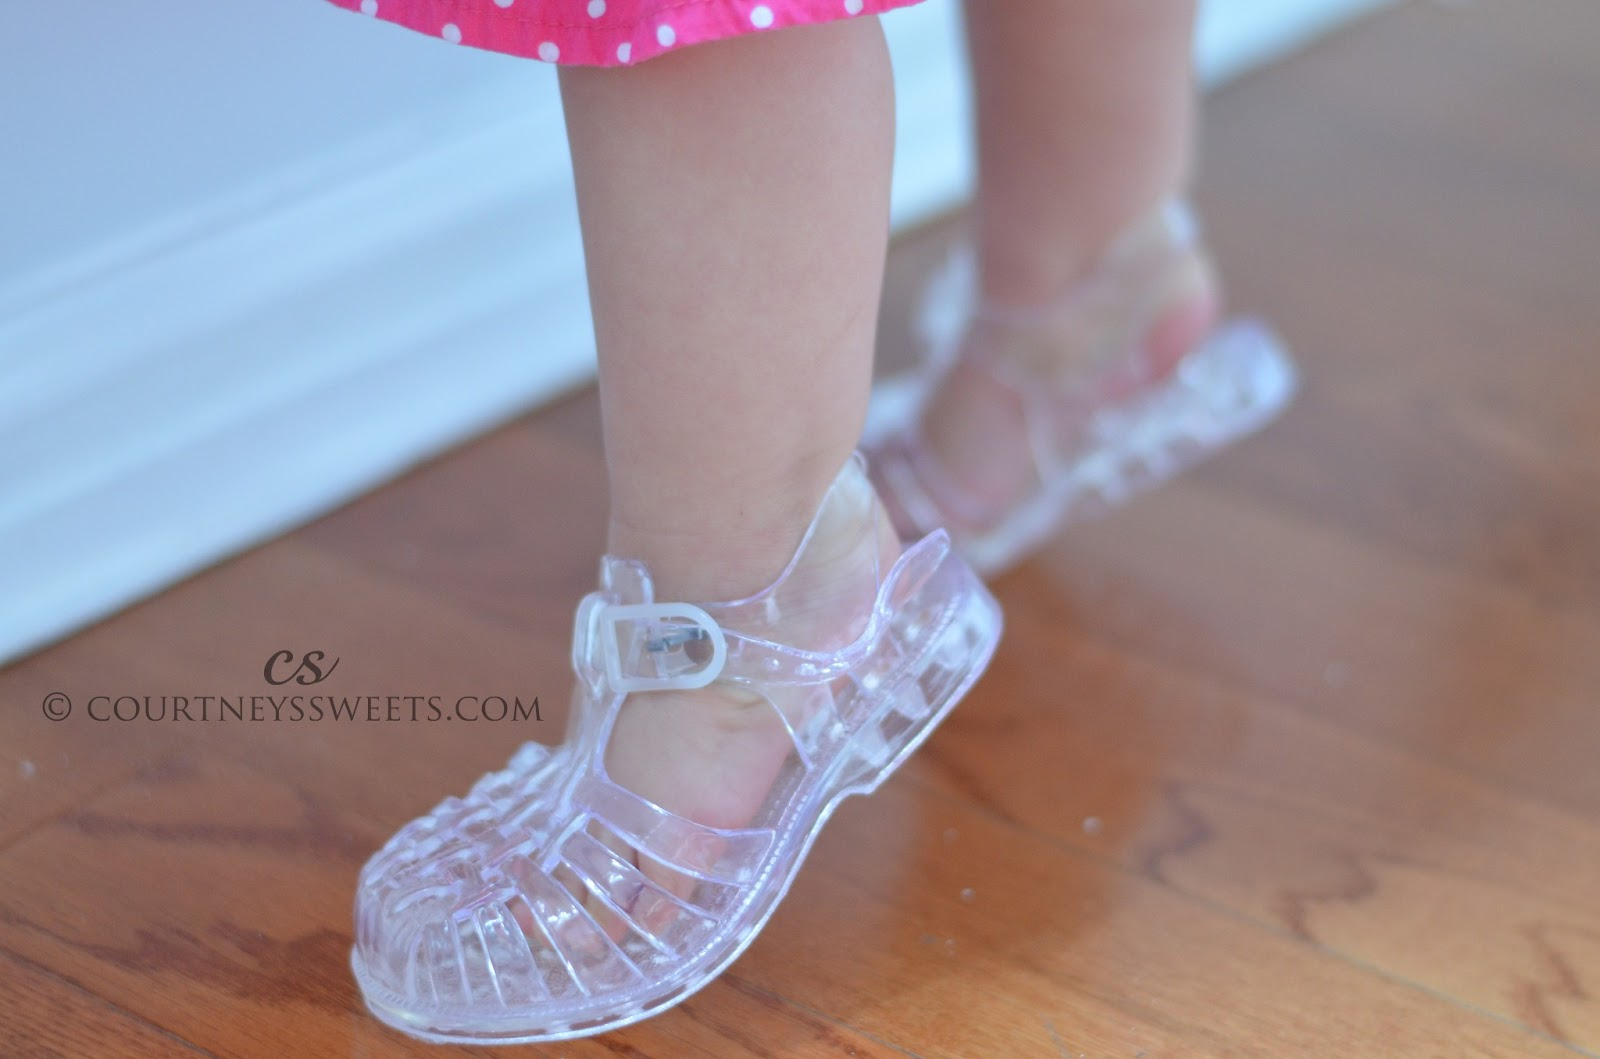 Wonderful Jellys Are Back! Jelly Bean Jelly Shoes Review - Courtney's Sweets MF23